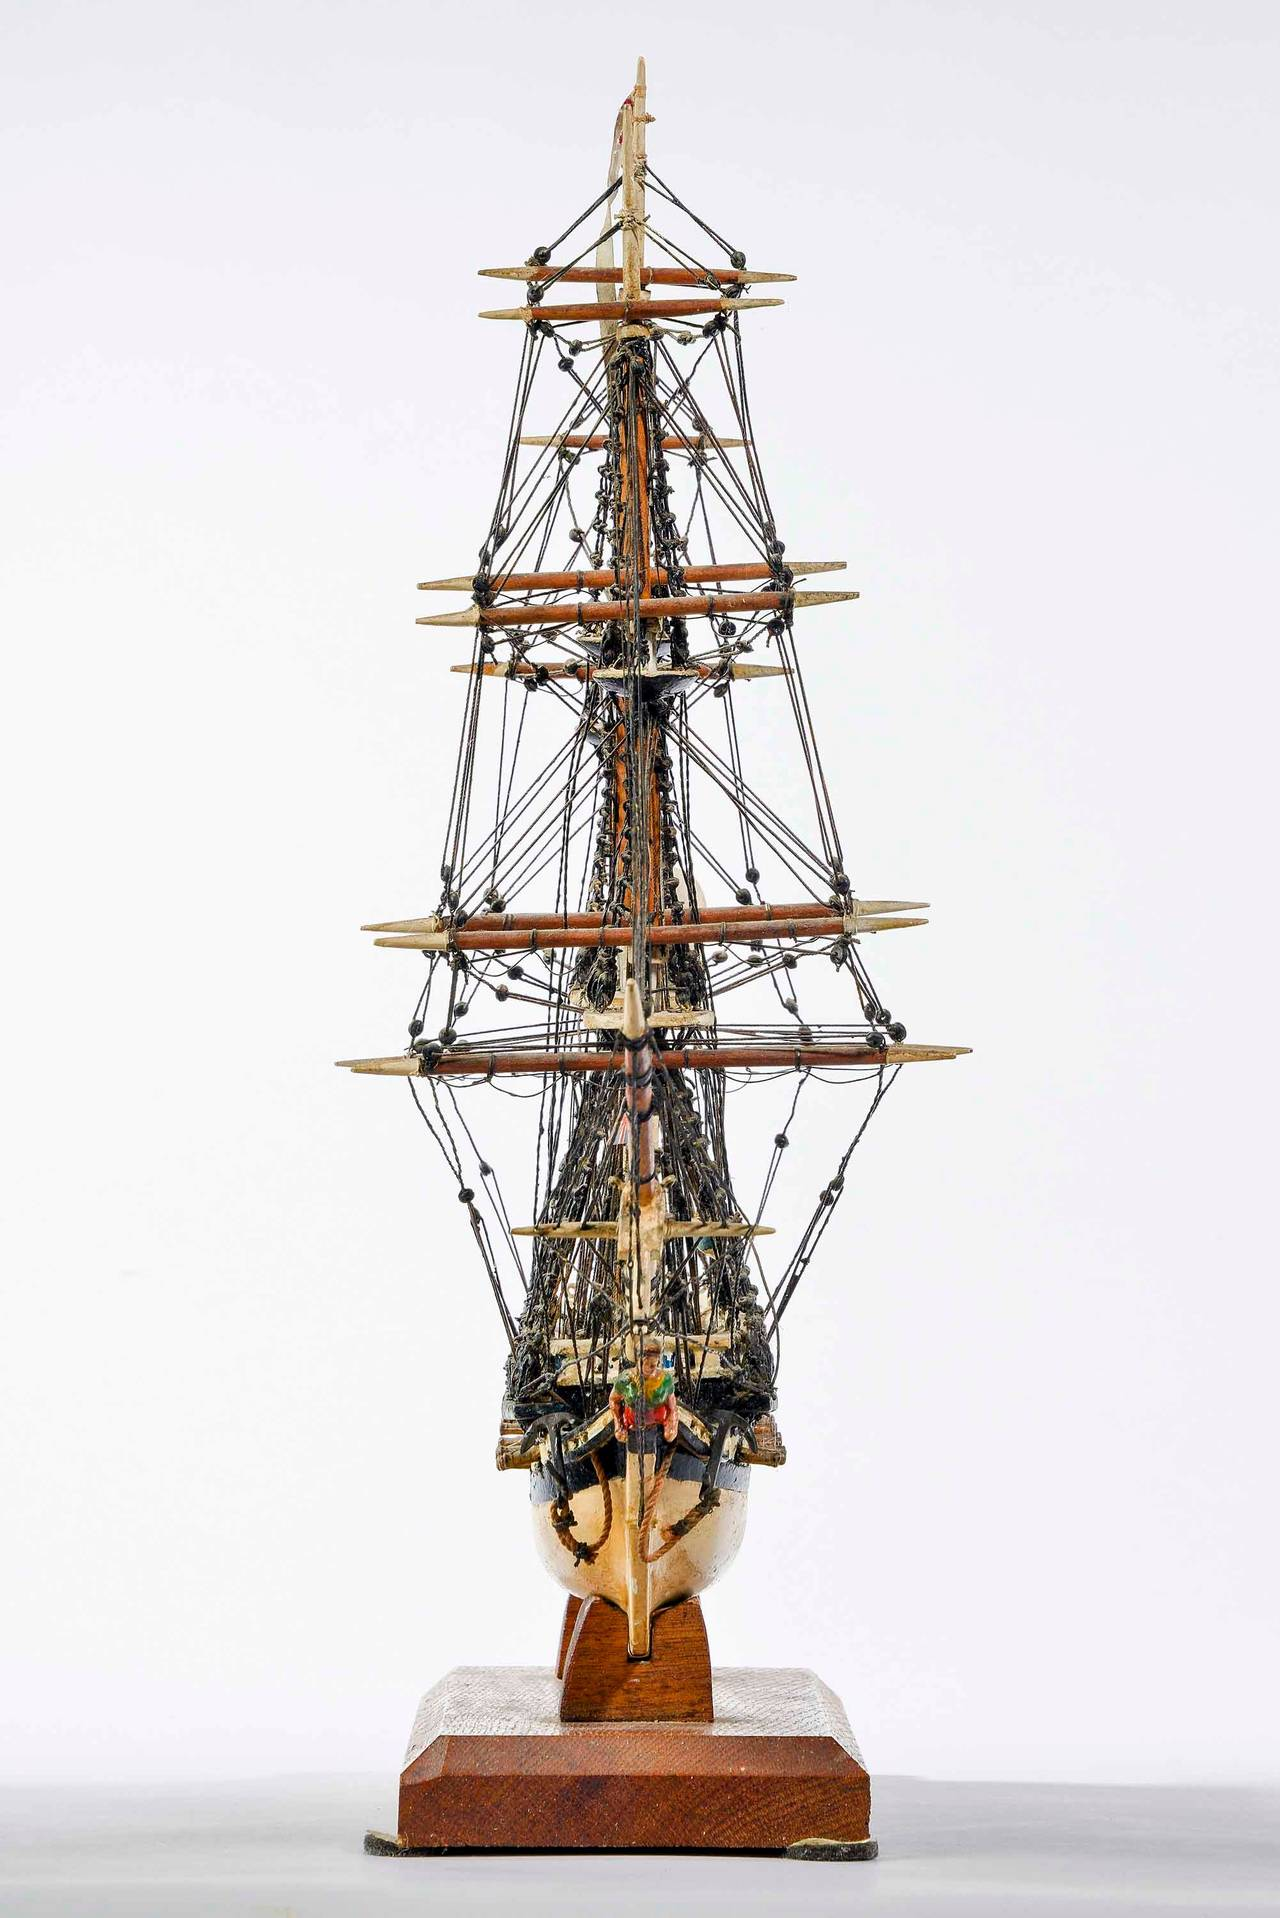 Fine Mid-20th Century Ship Model In Good Condition For Sale In Peterborough, Northamptonshire